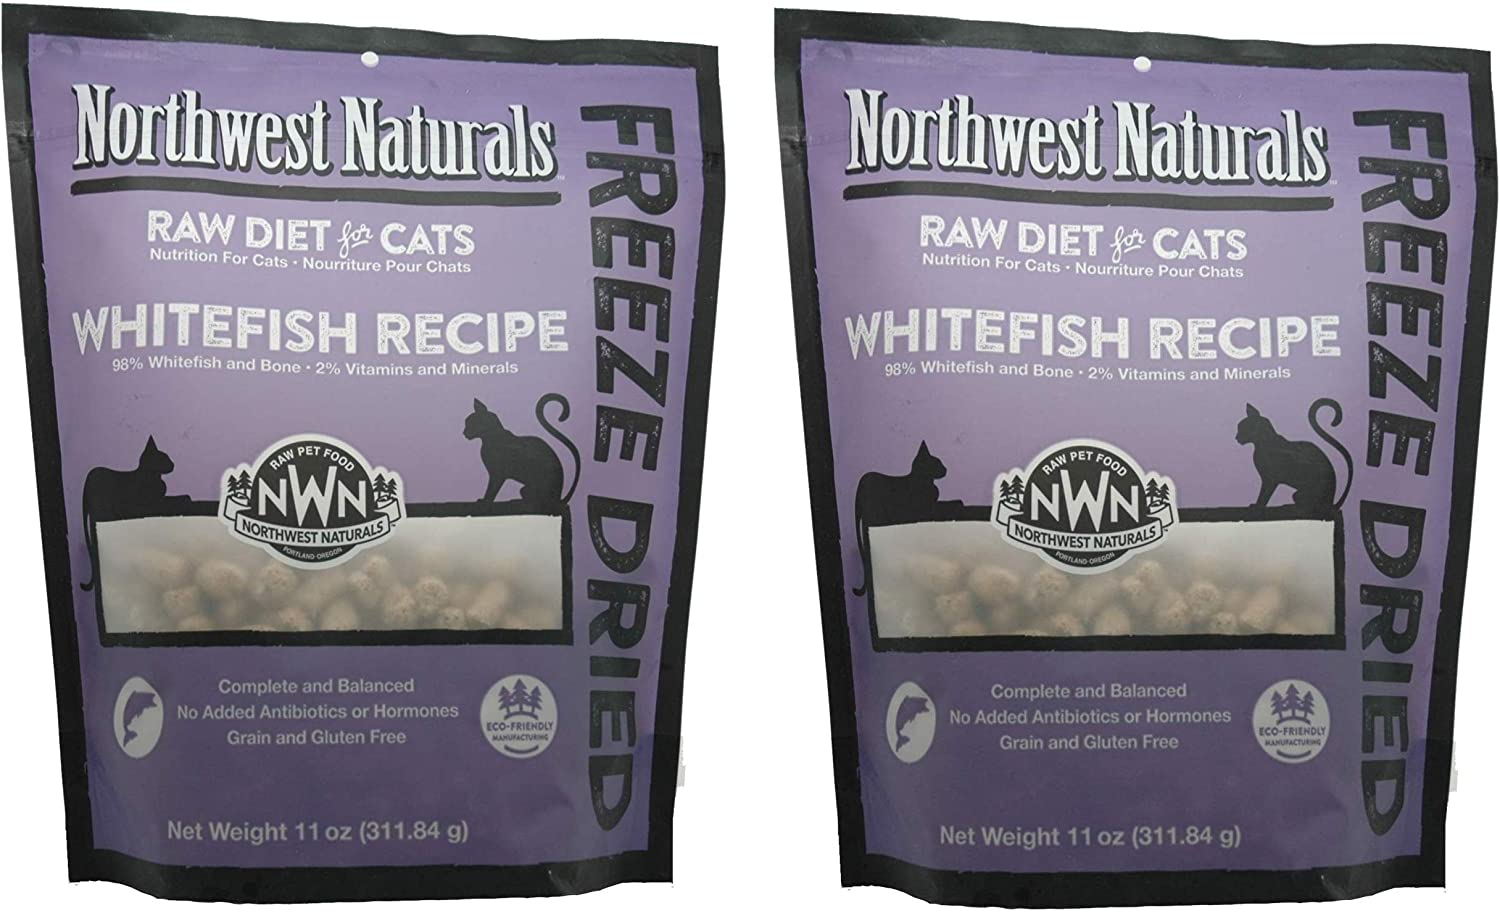 Northwest Naturals 2 Pack of Freeze-Dried Whitefish Raw Food for Cats, 11 Ounces Each